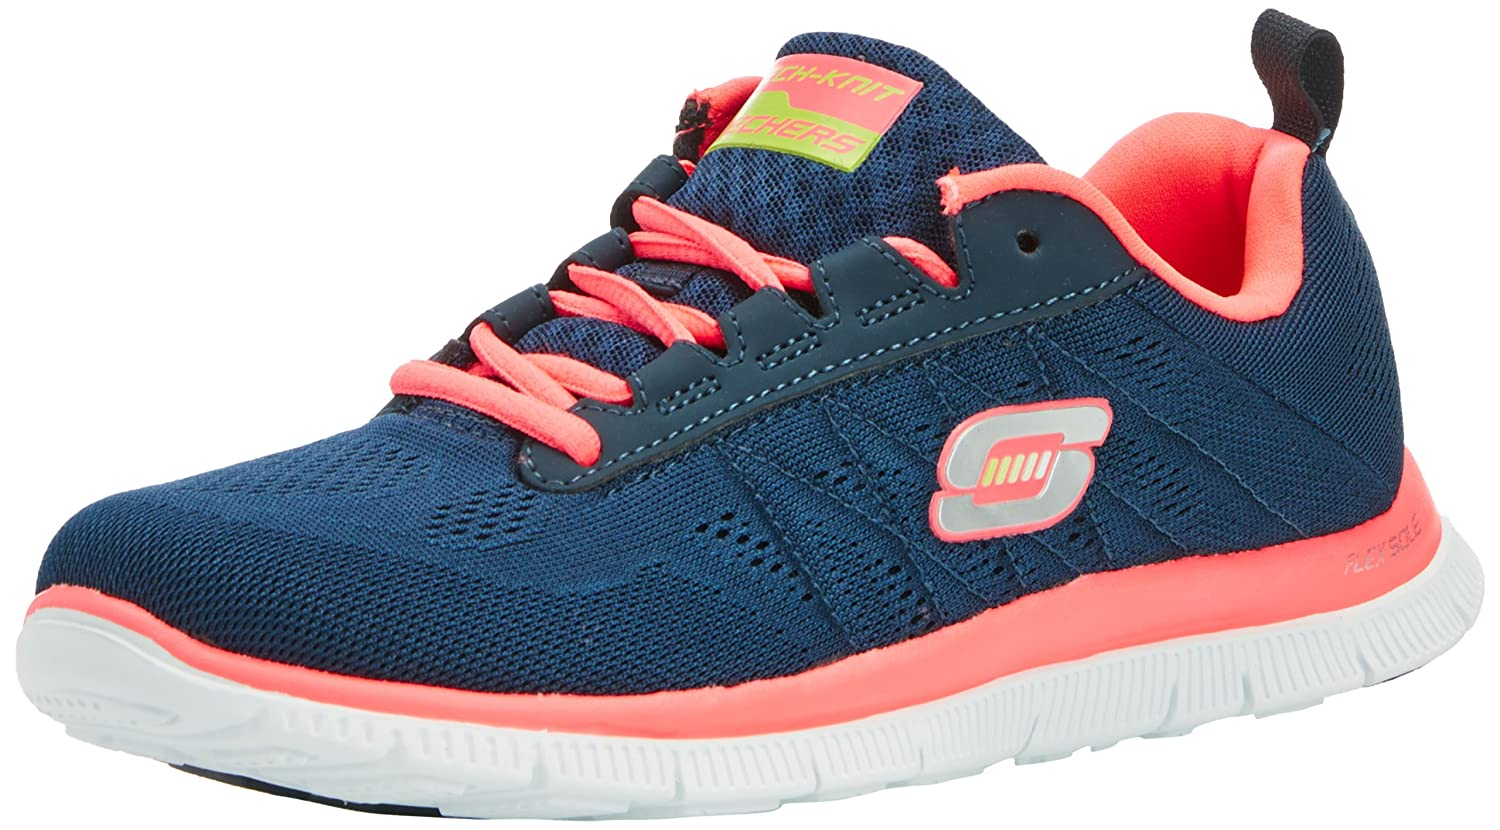 Skechers Sport Women s Sweet Spot Fashion Sneaker